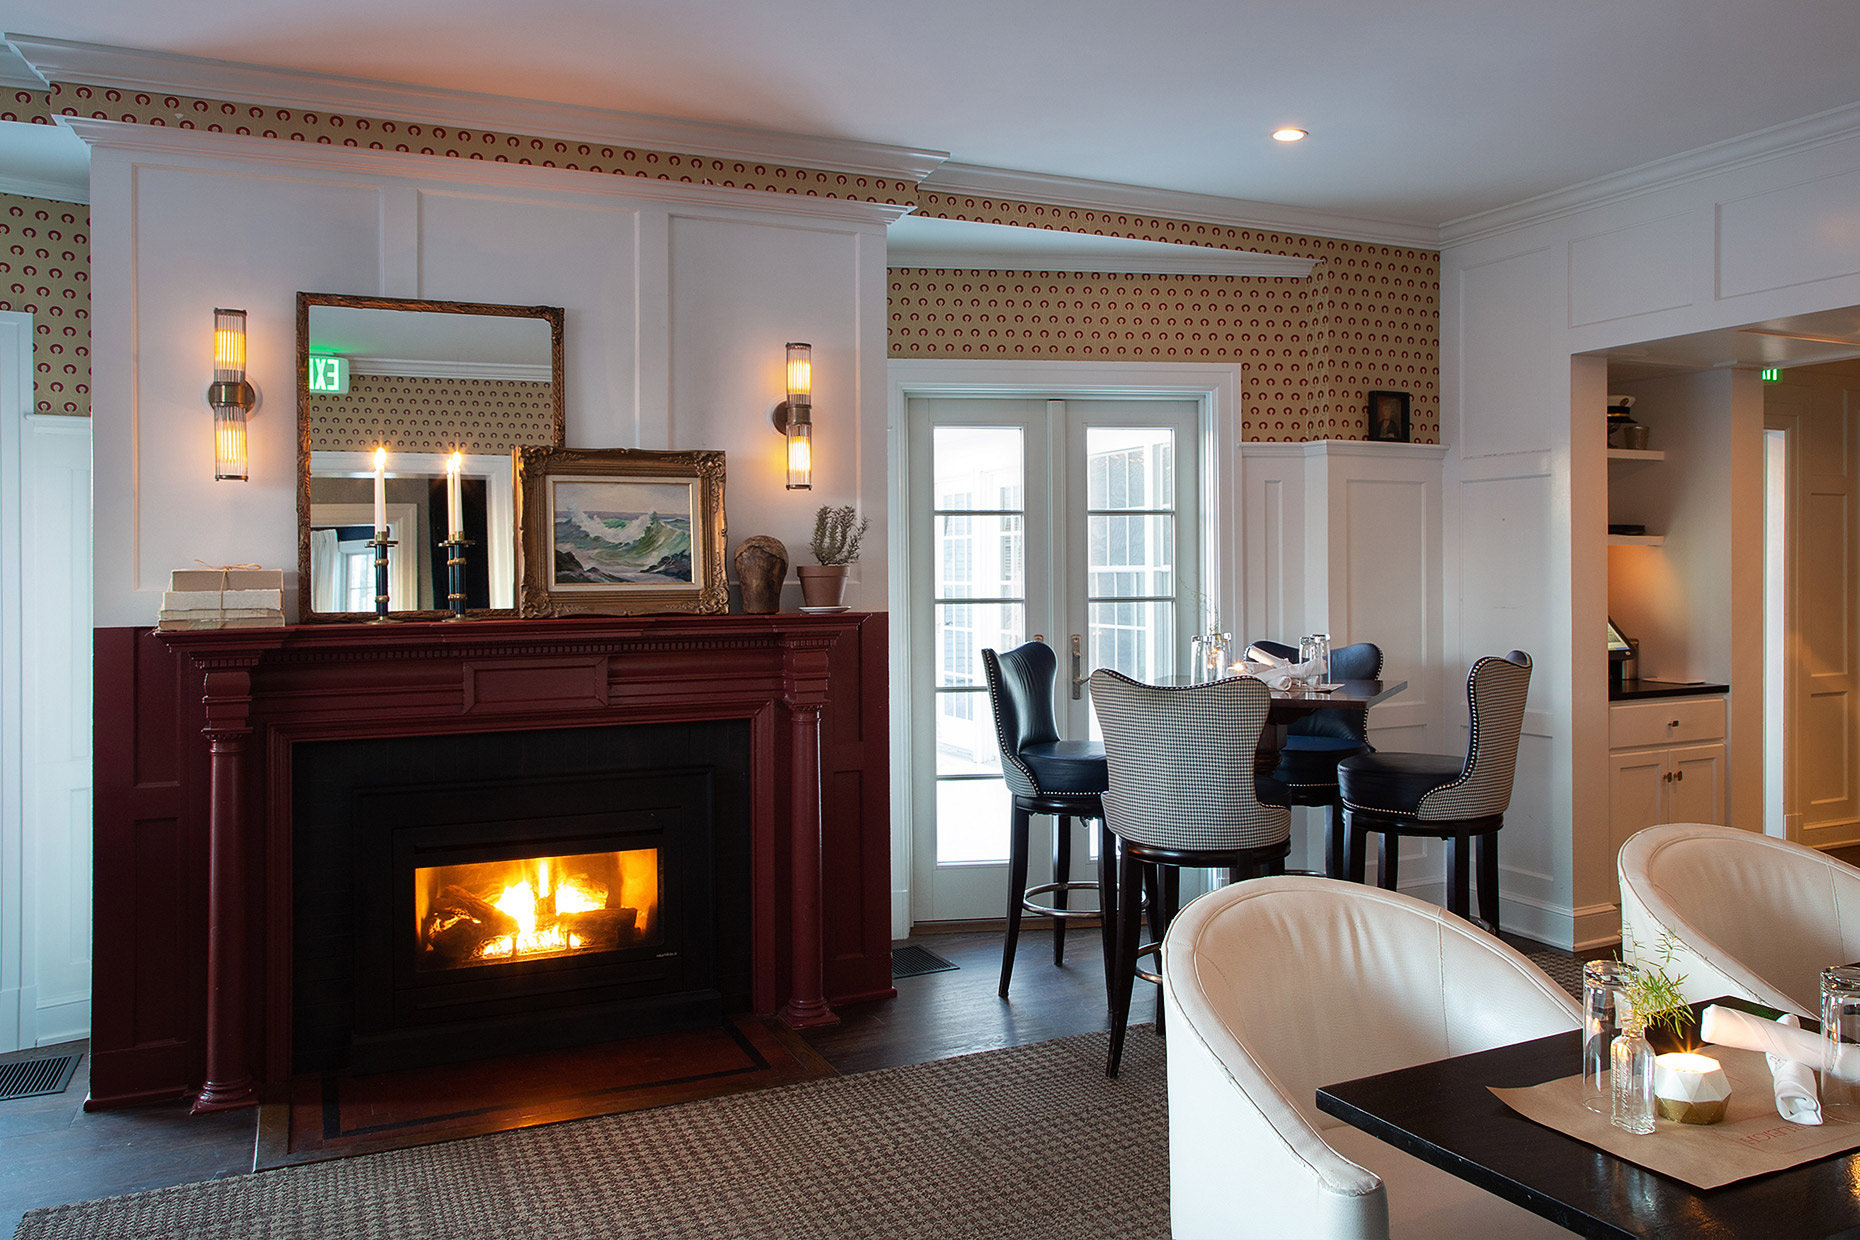 Kennebunkport-Inn-The Burleigh-Kennebubkport-Resort-Collection-Maine-Hopsitality-Photography-Caryn-B-Davis